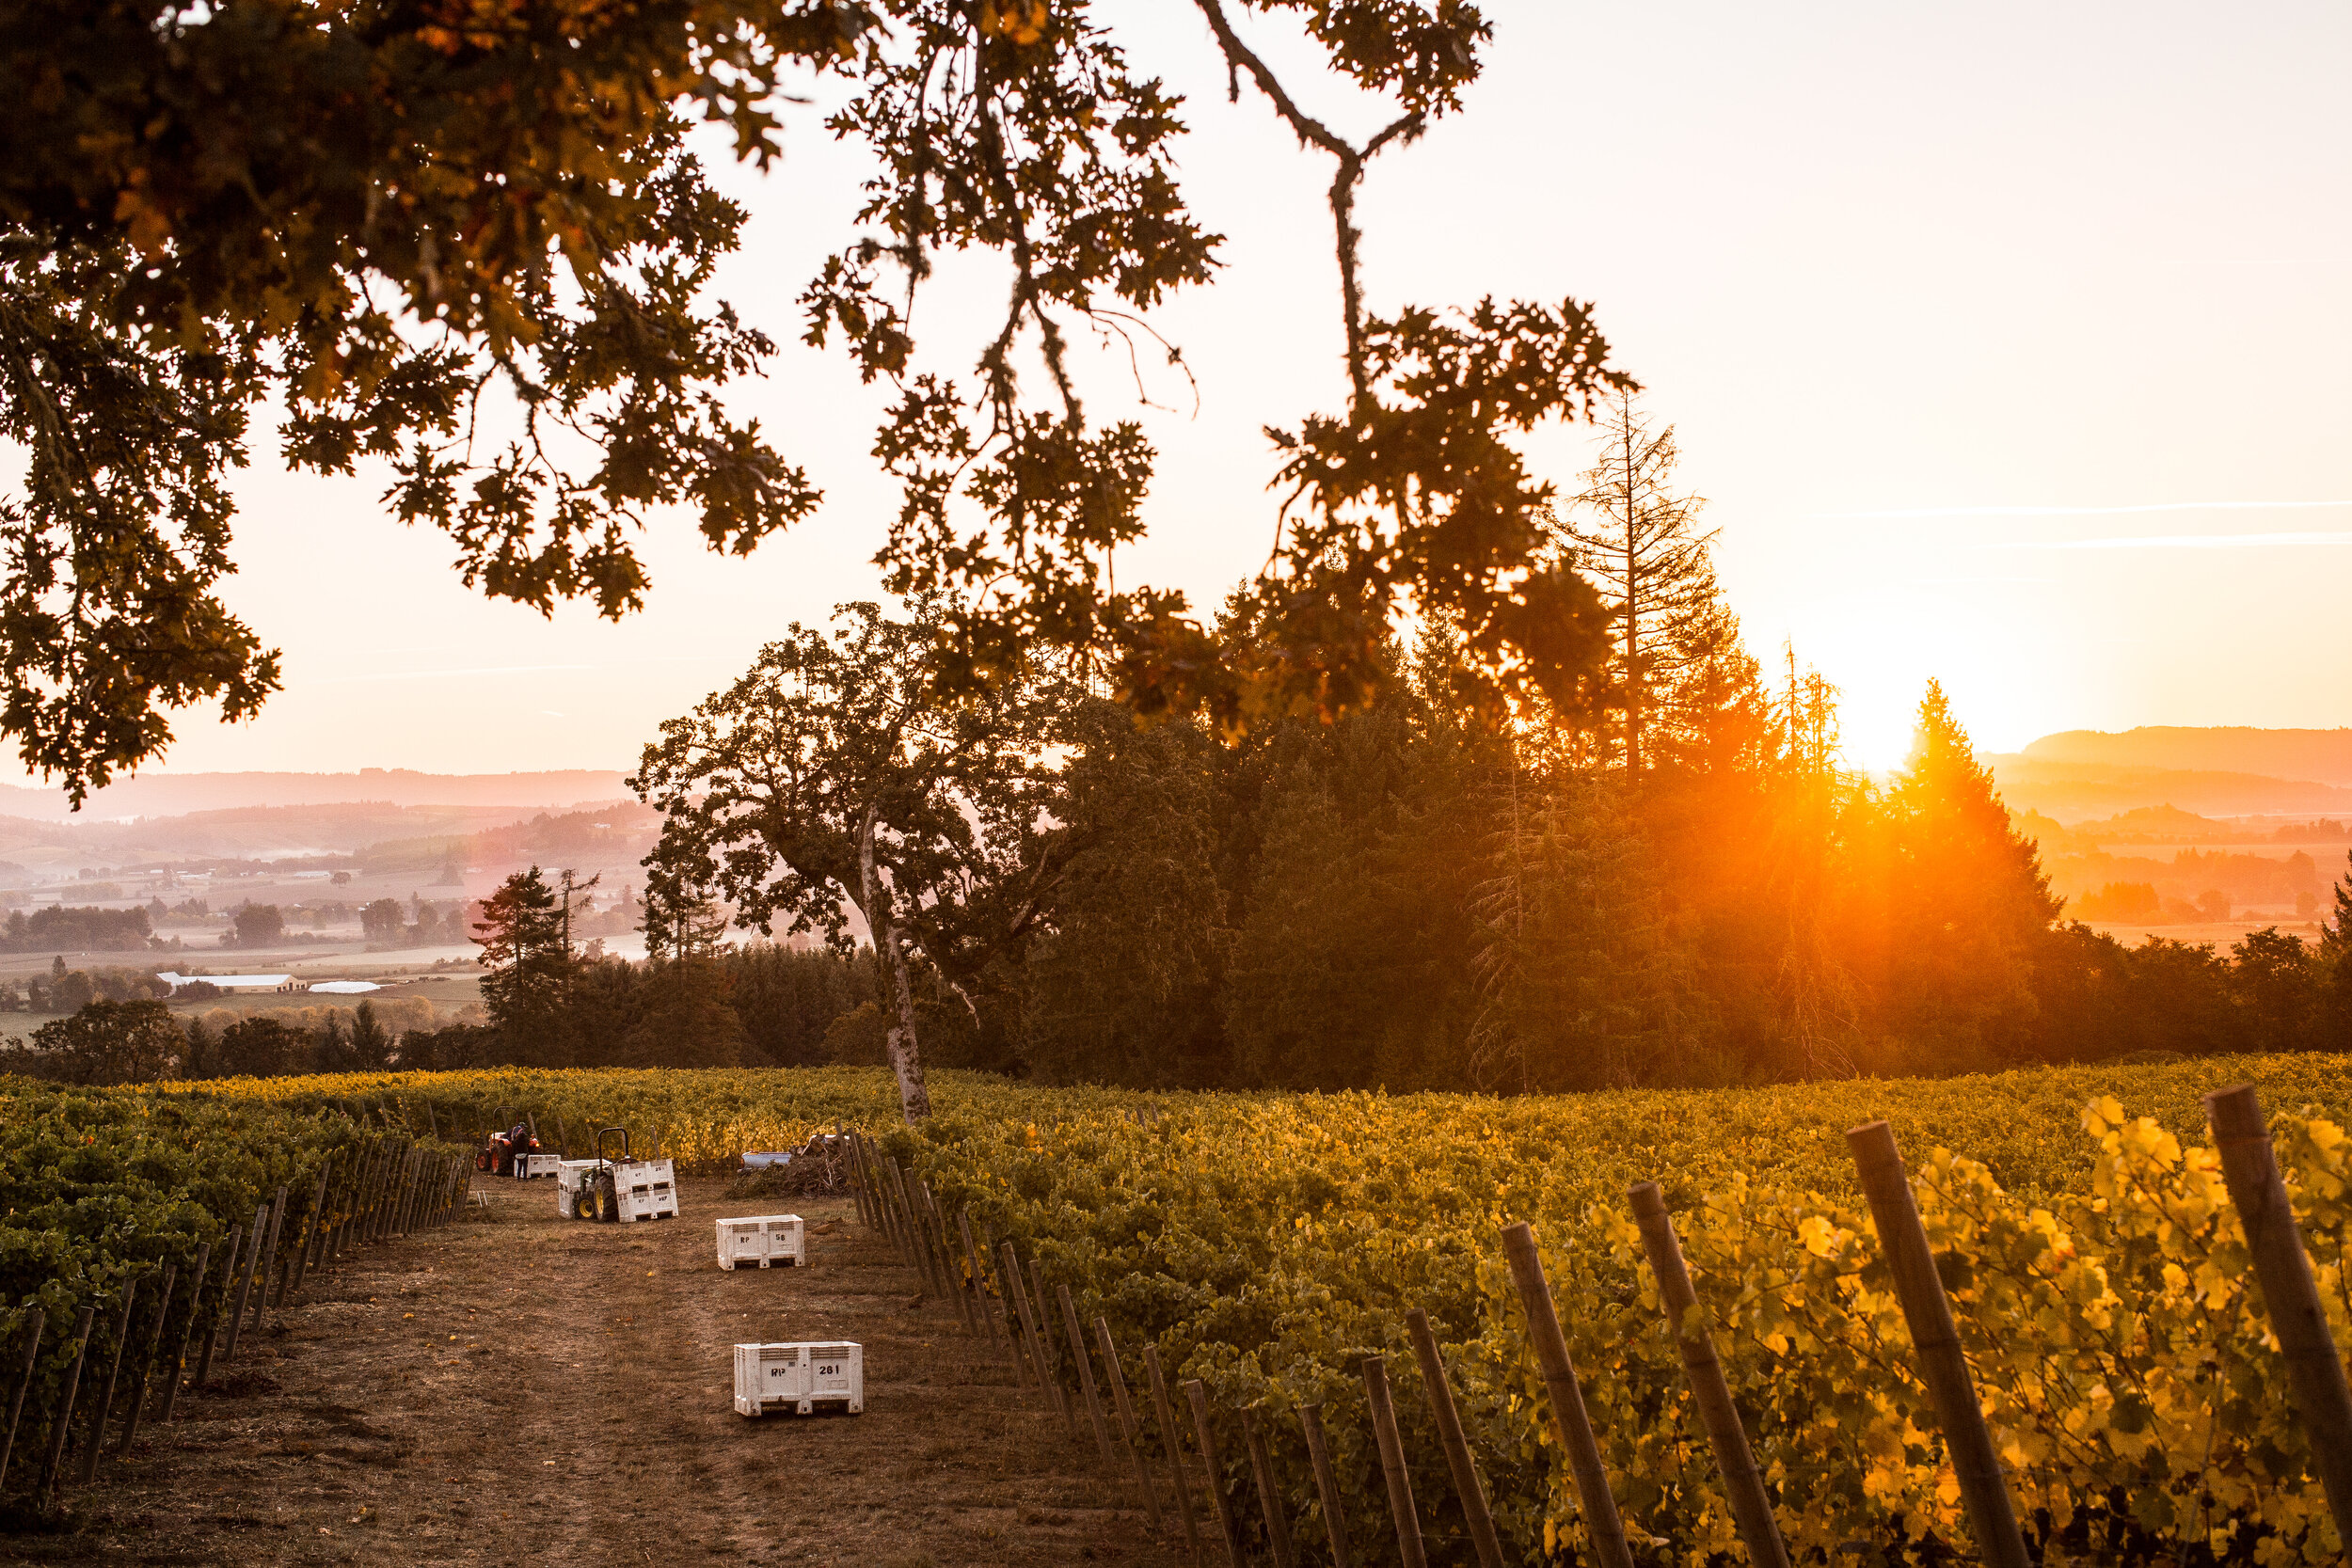 - Board of DirectorsThe OWC Board of Directors is made up of 13 Owners and CEOs from the Oregon wine industry.